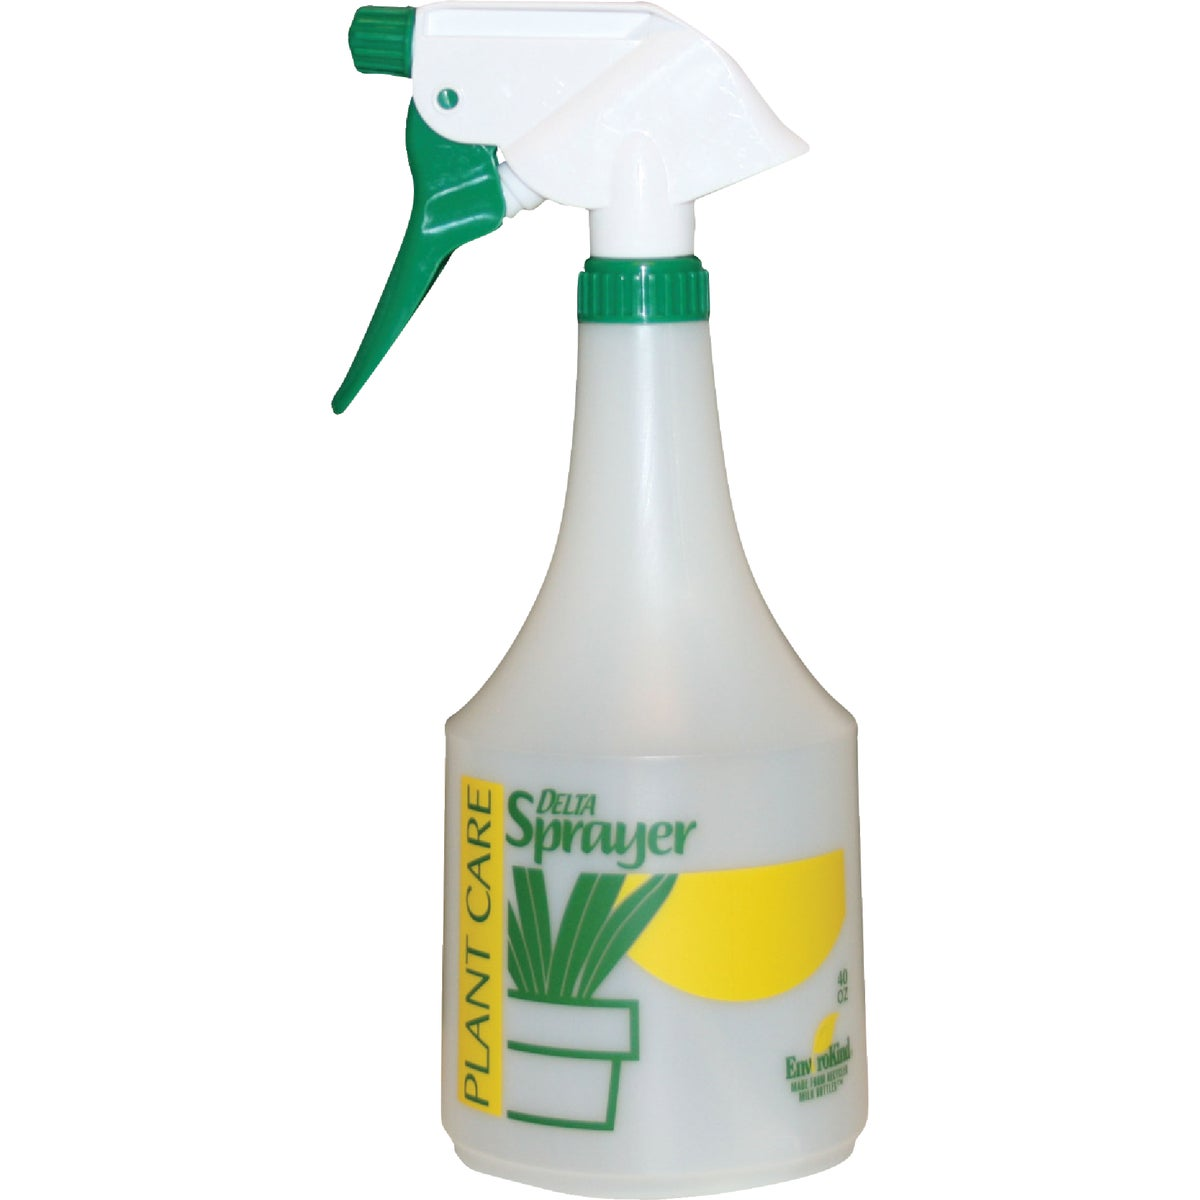 PROF SPRAY BOTTLE - 64078 by Delta Industries